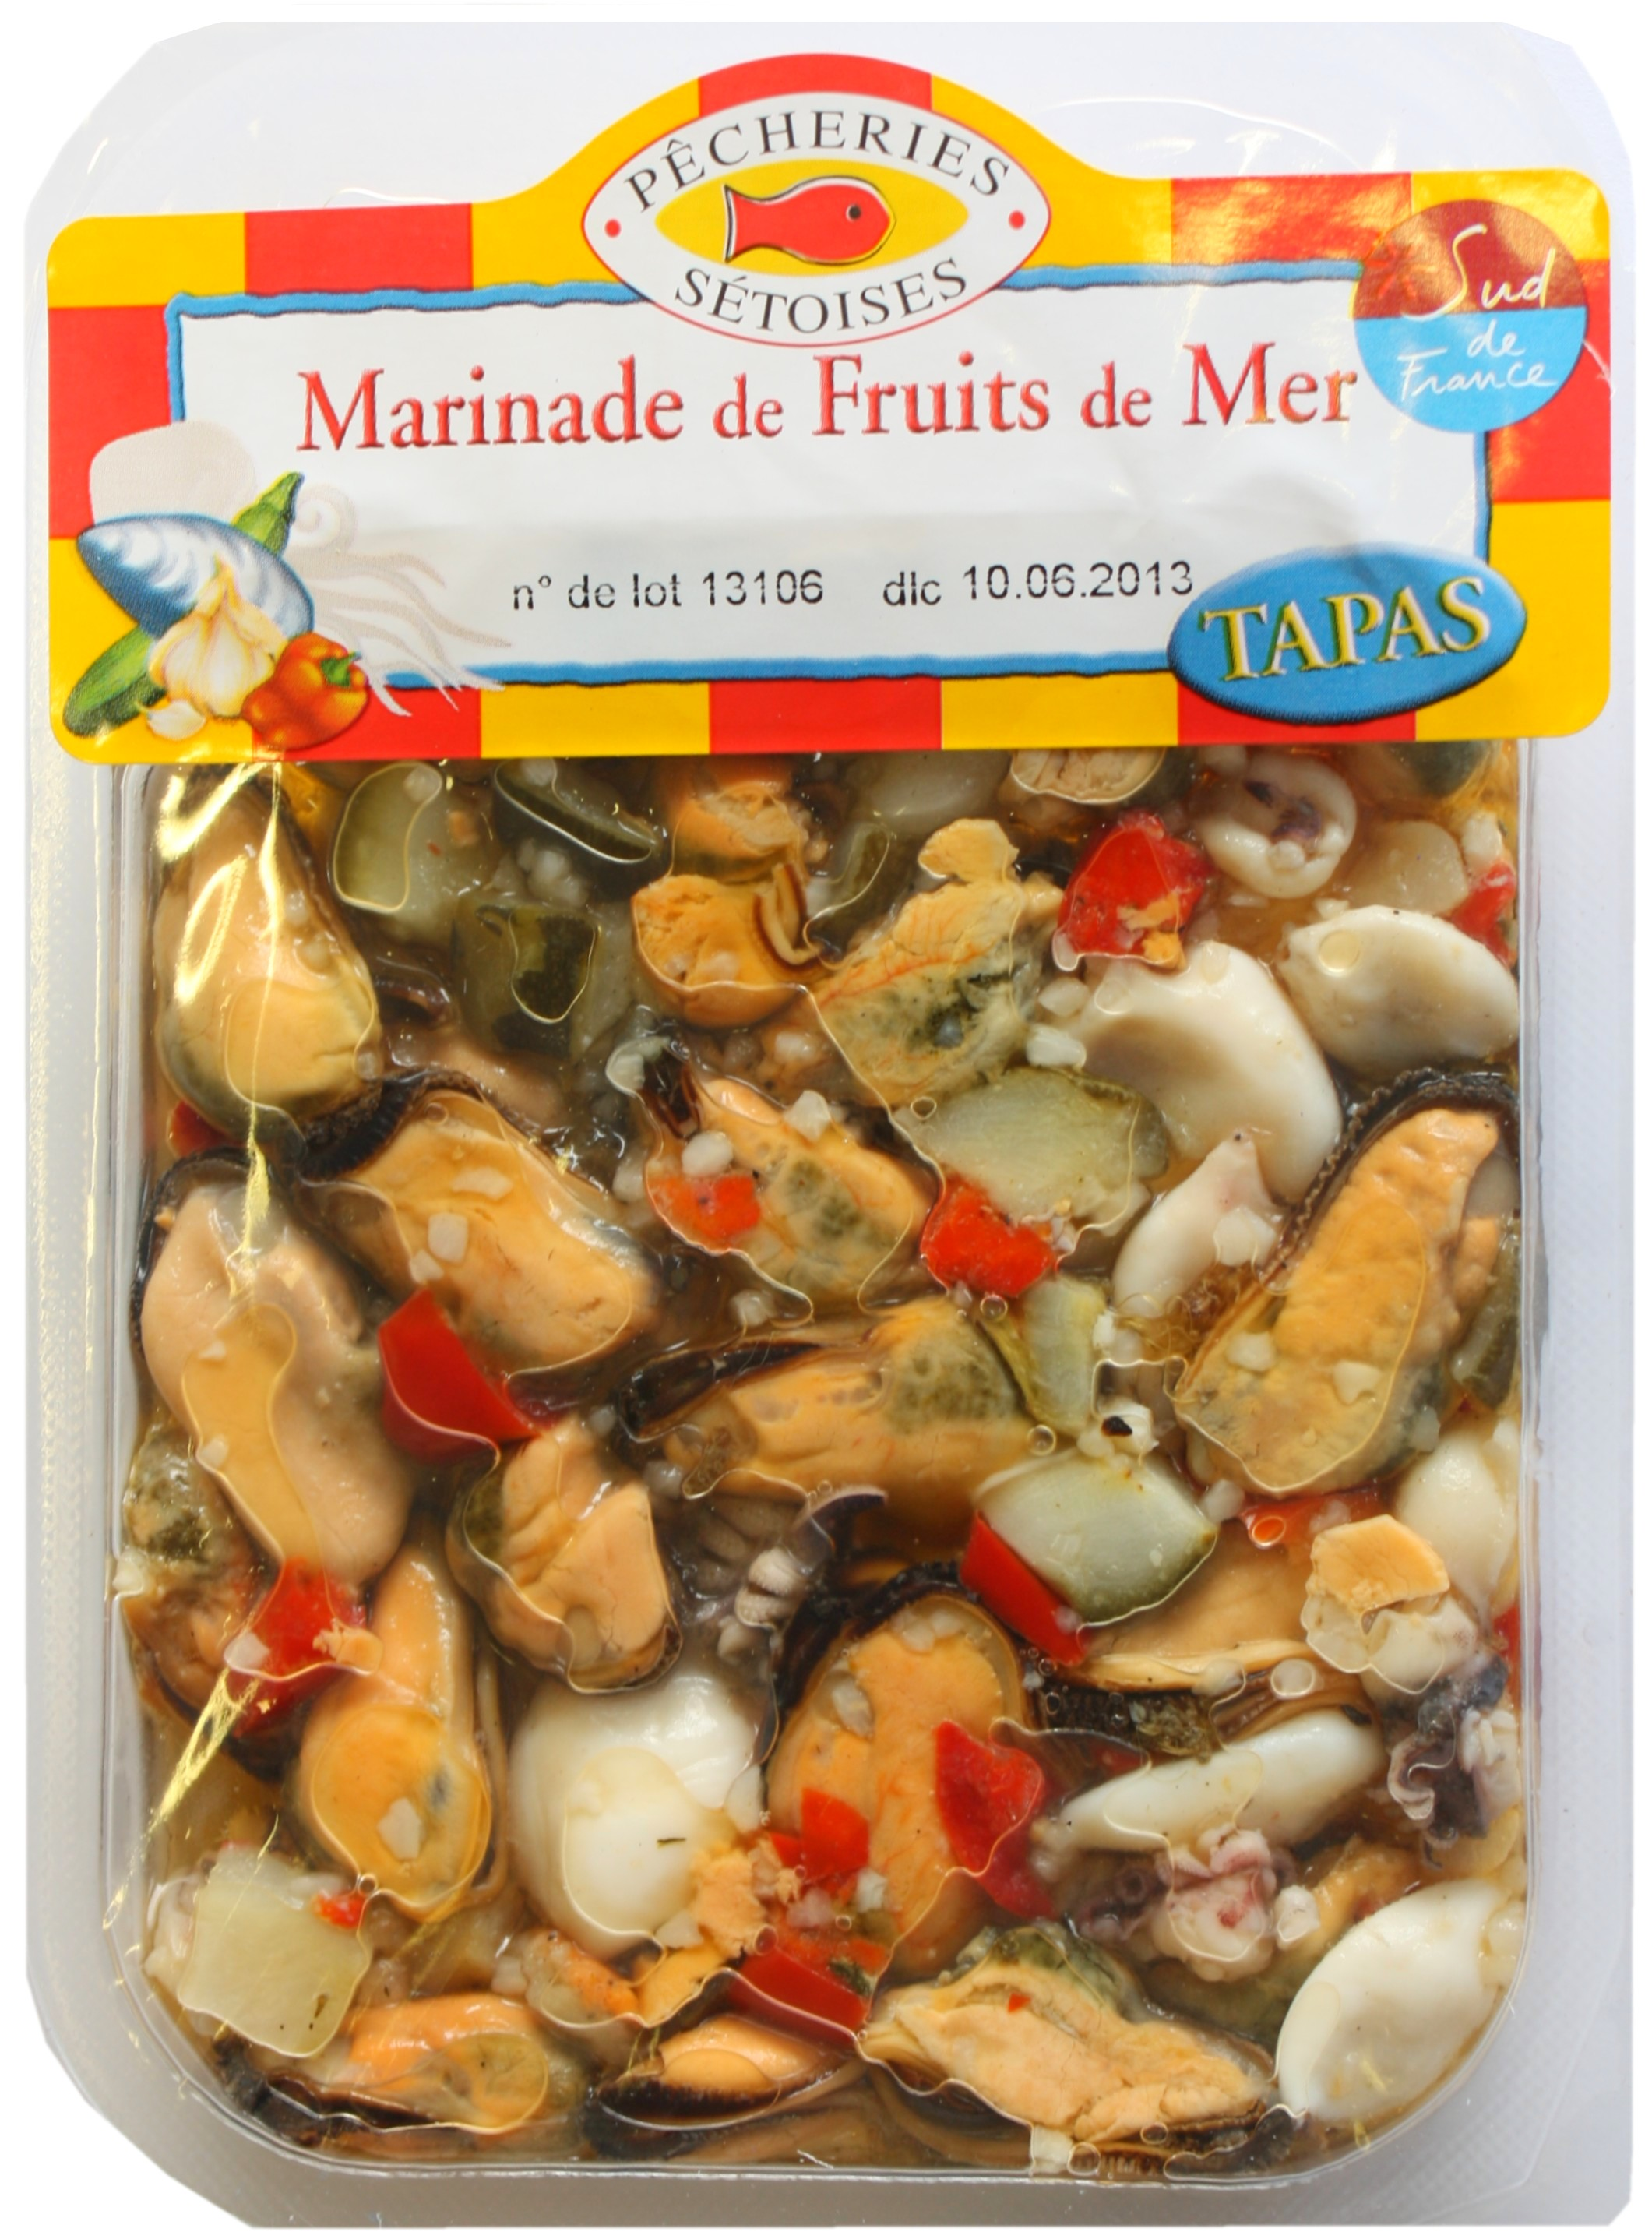 Salade marinade de fruits de mer, Pêcheries Sétoises (150 g)